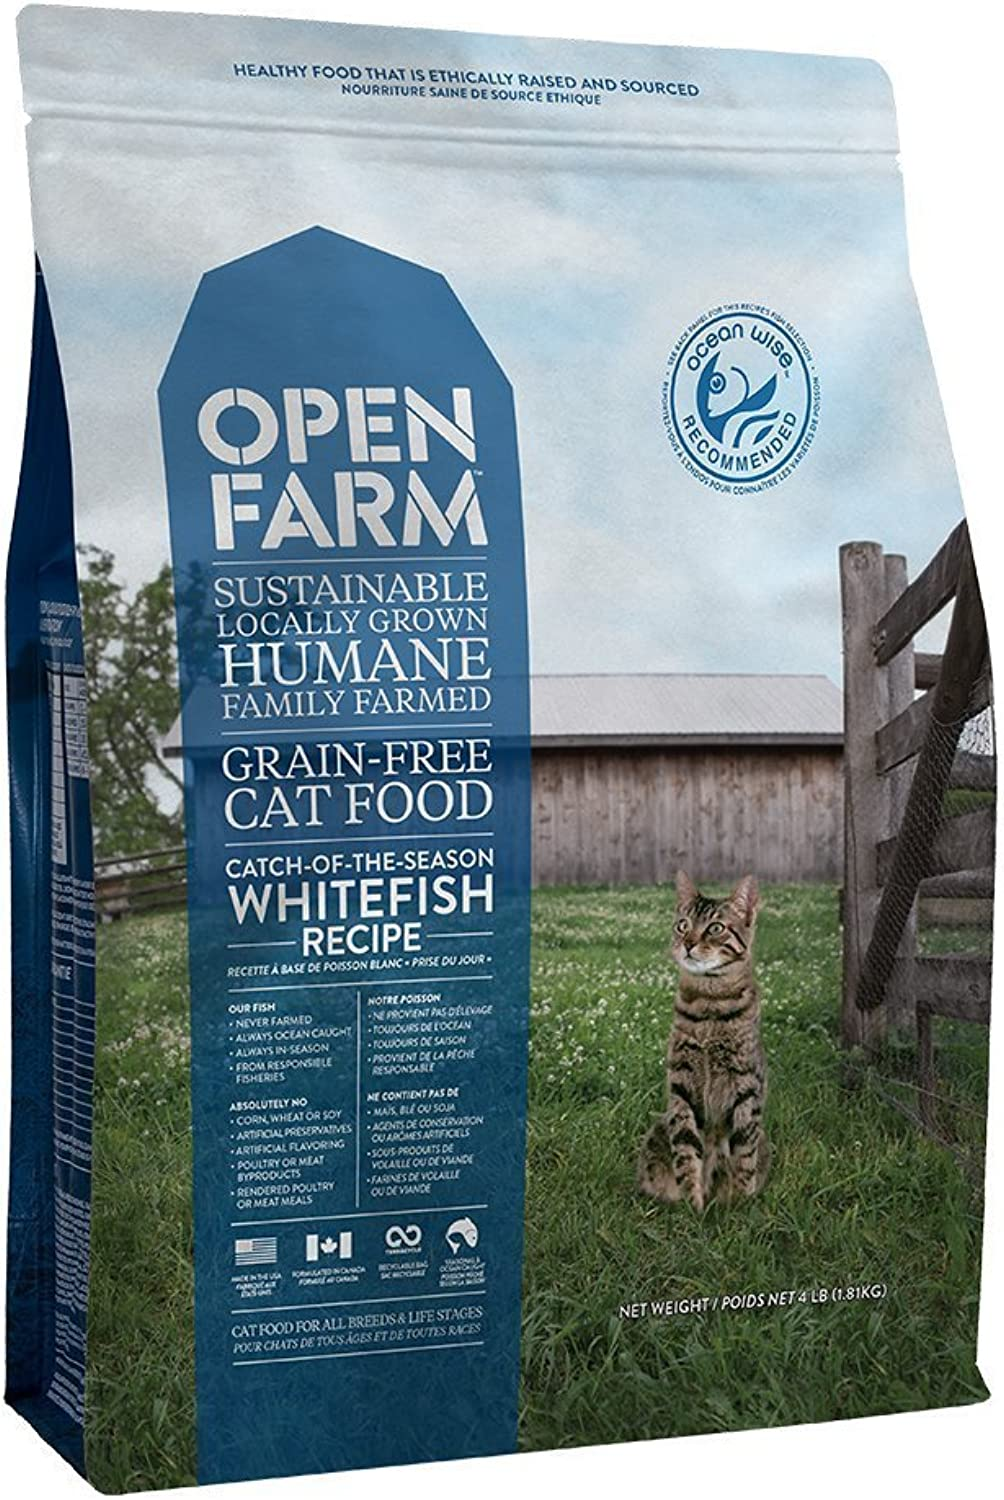 Open Farm OF12322 CatchOfTheSeason Whitefish Recipe Organic Sustainable Cat Food, 4 lbs, One Size